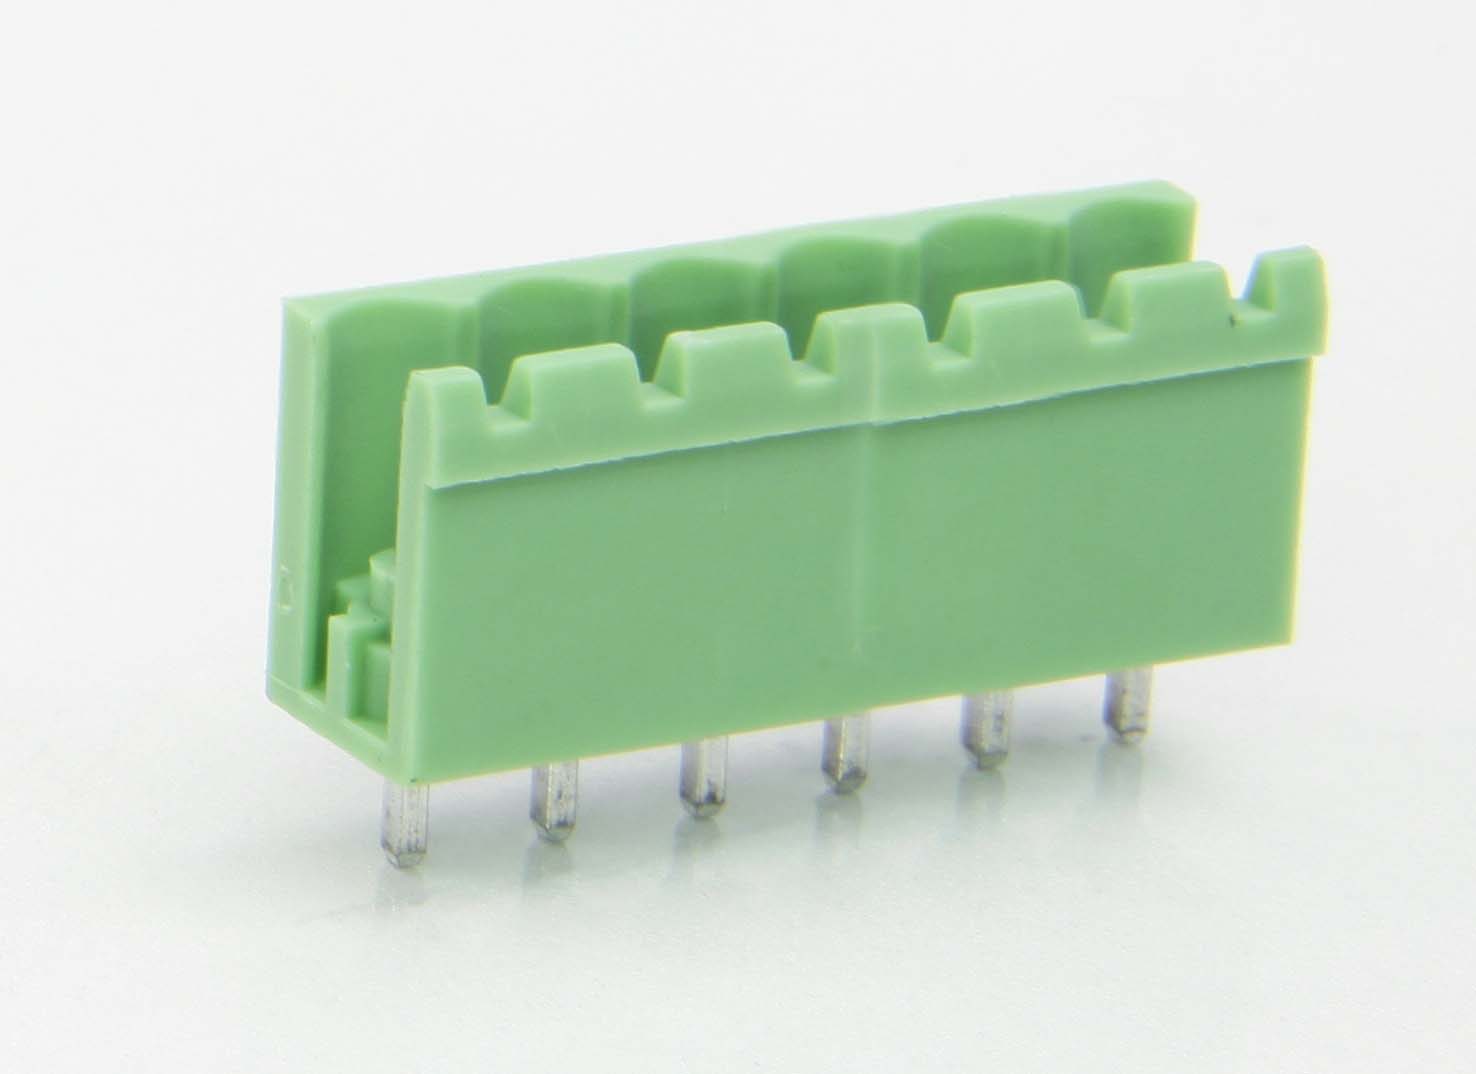 2ELPV-5.08 Screw Connector